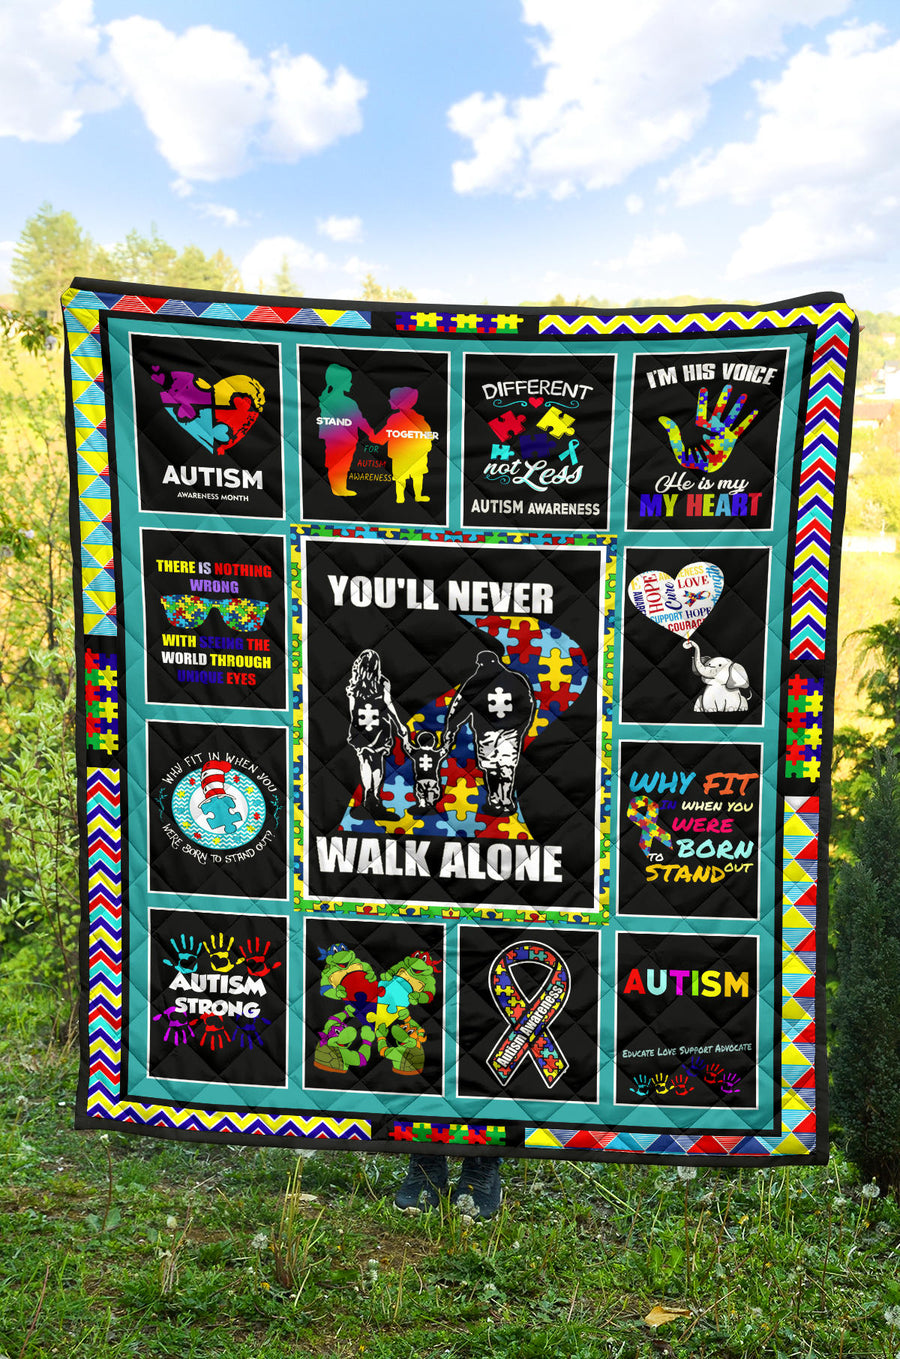 Austism - You'll Never Walk Alone - Premium Quilt